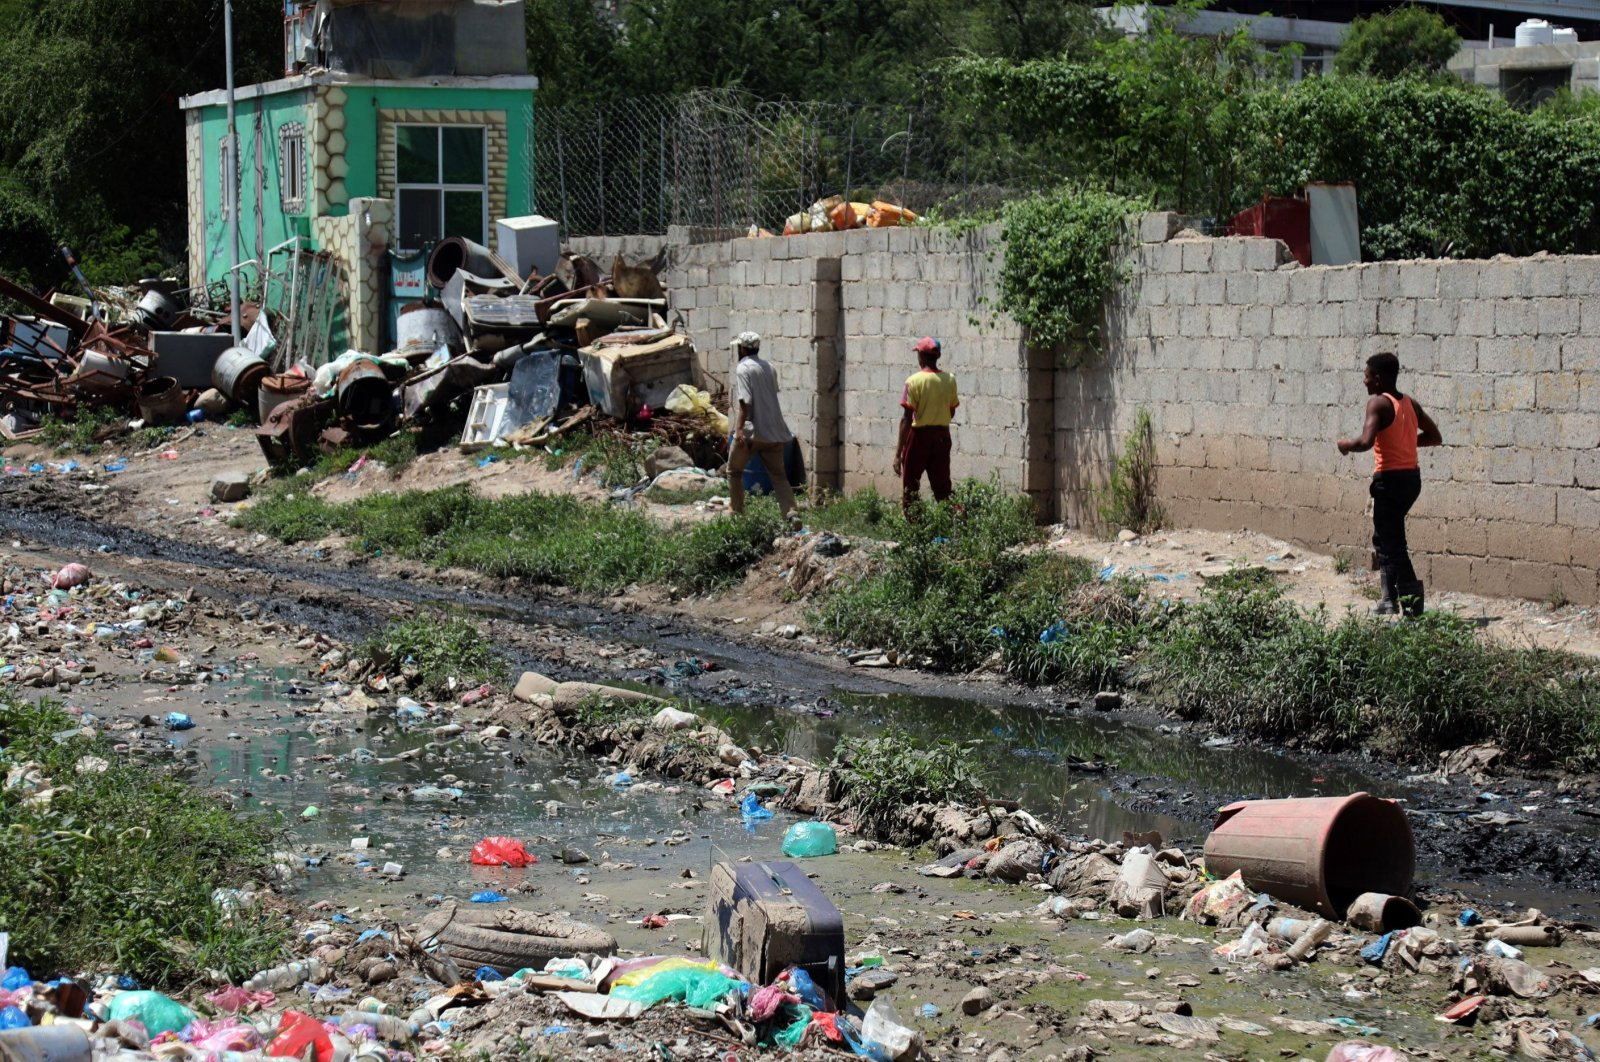 People walk along open sewers and scattered rubbish in Yemen's third city of Taiz, Sept. 19, 2020. (AFP Photo)